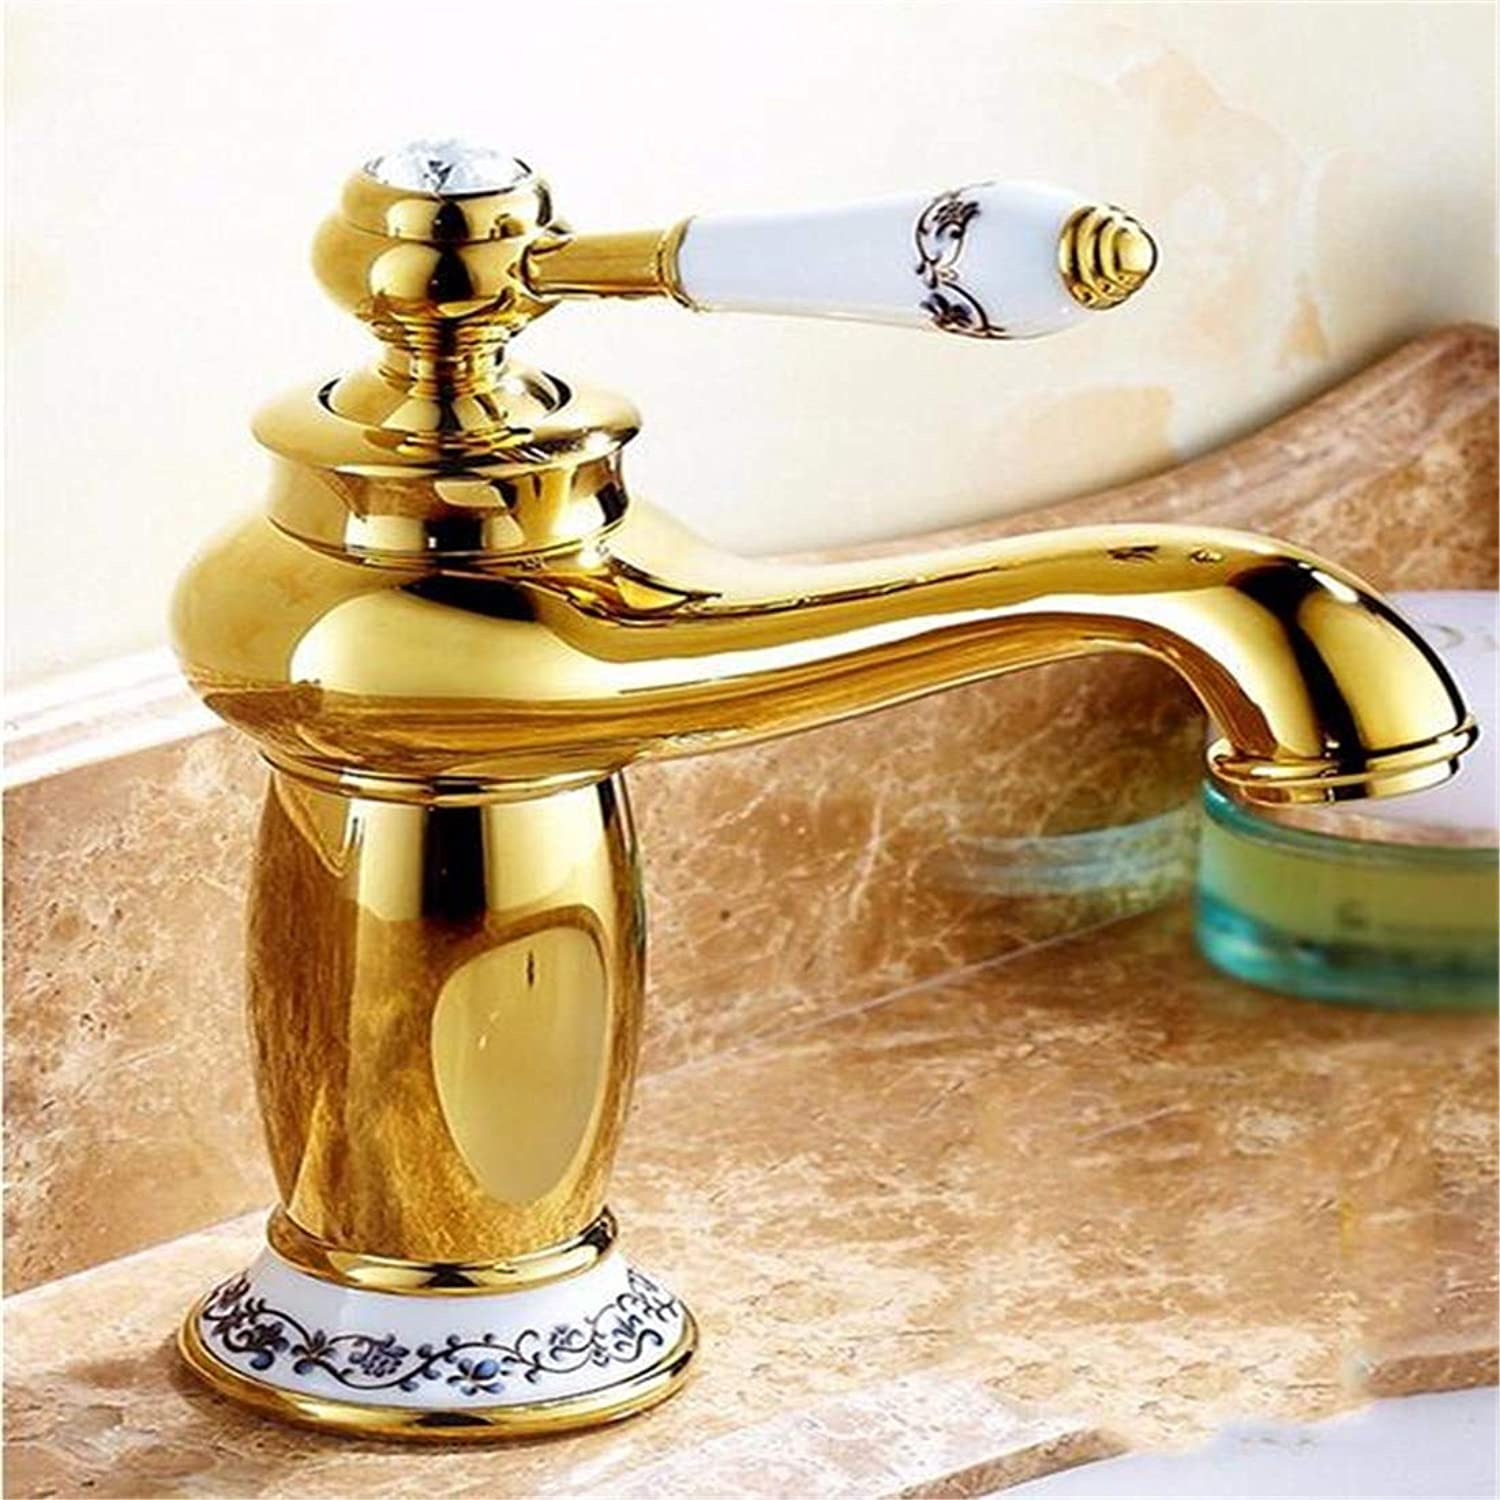 Chrome Kitchen Sink Tapsink Mixer Tap Faucet Modern Retro Style Copper Basin Hot and Cold Single Hole Sink Mixer